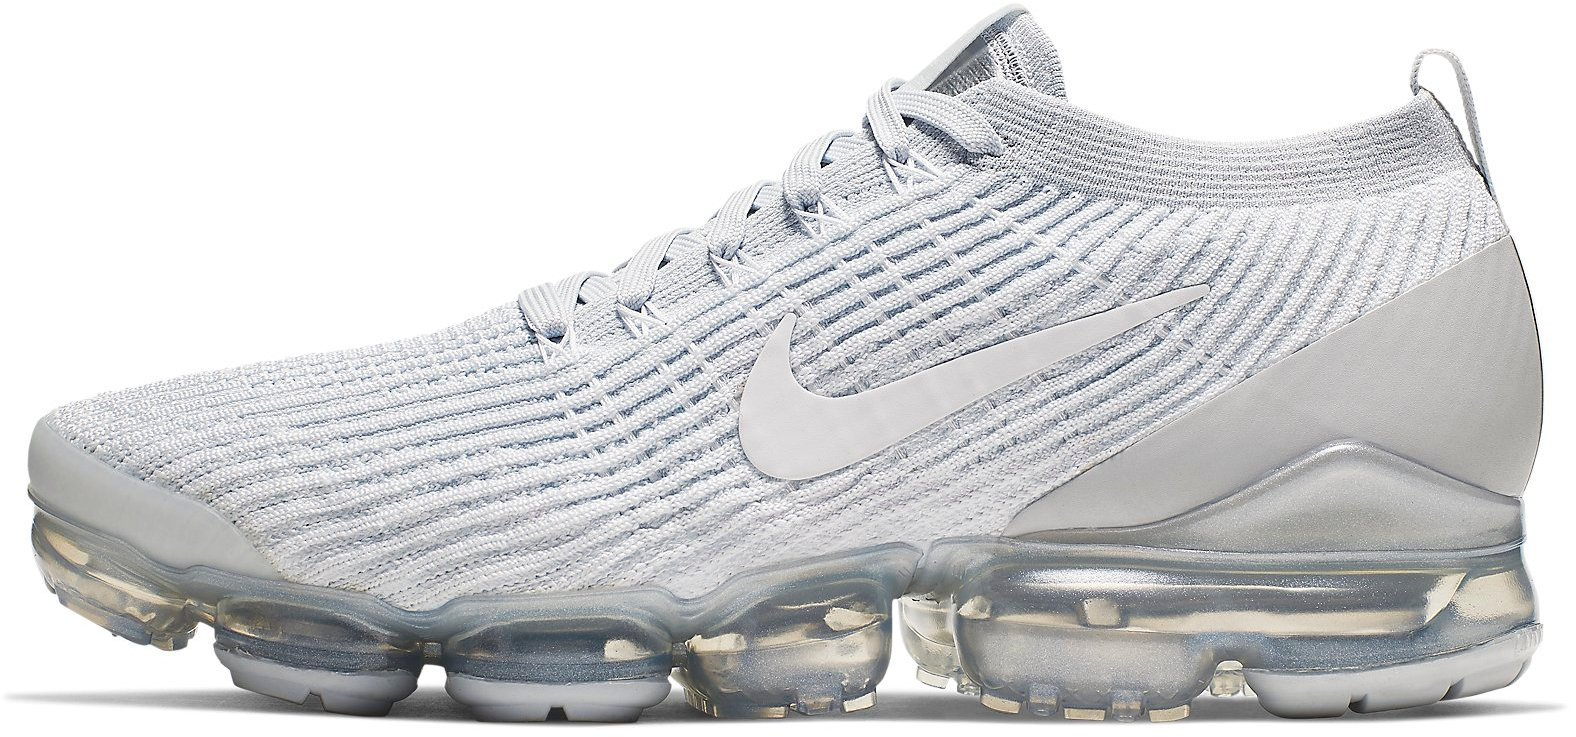 Nike Air Vapormax Shoes Shoes Nike AIR VAPORMAX FLYKNIT 3 - Top4Running.com